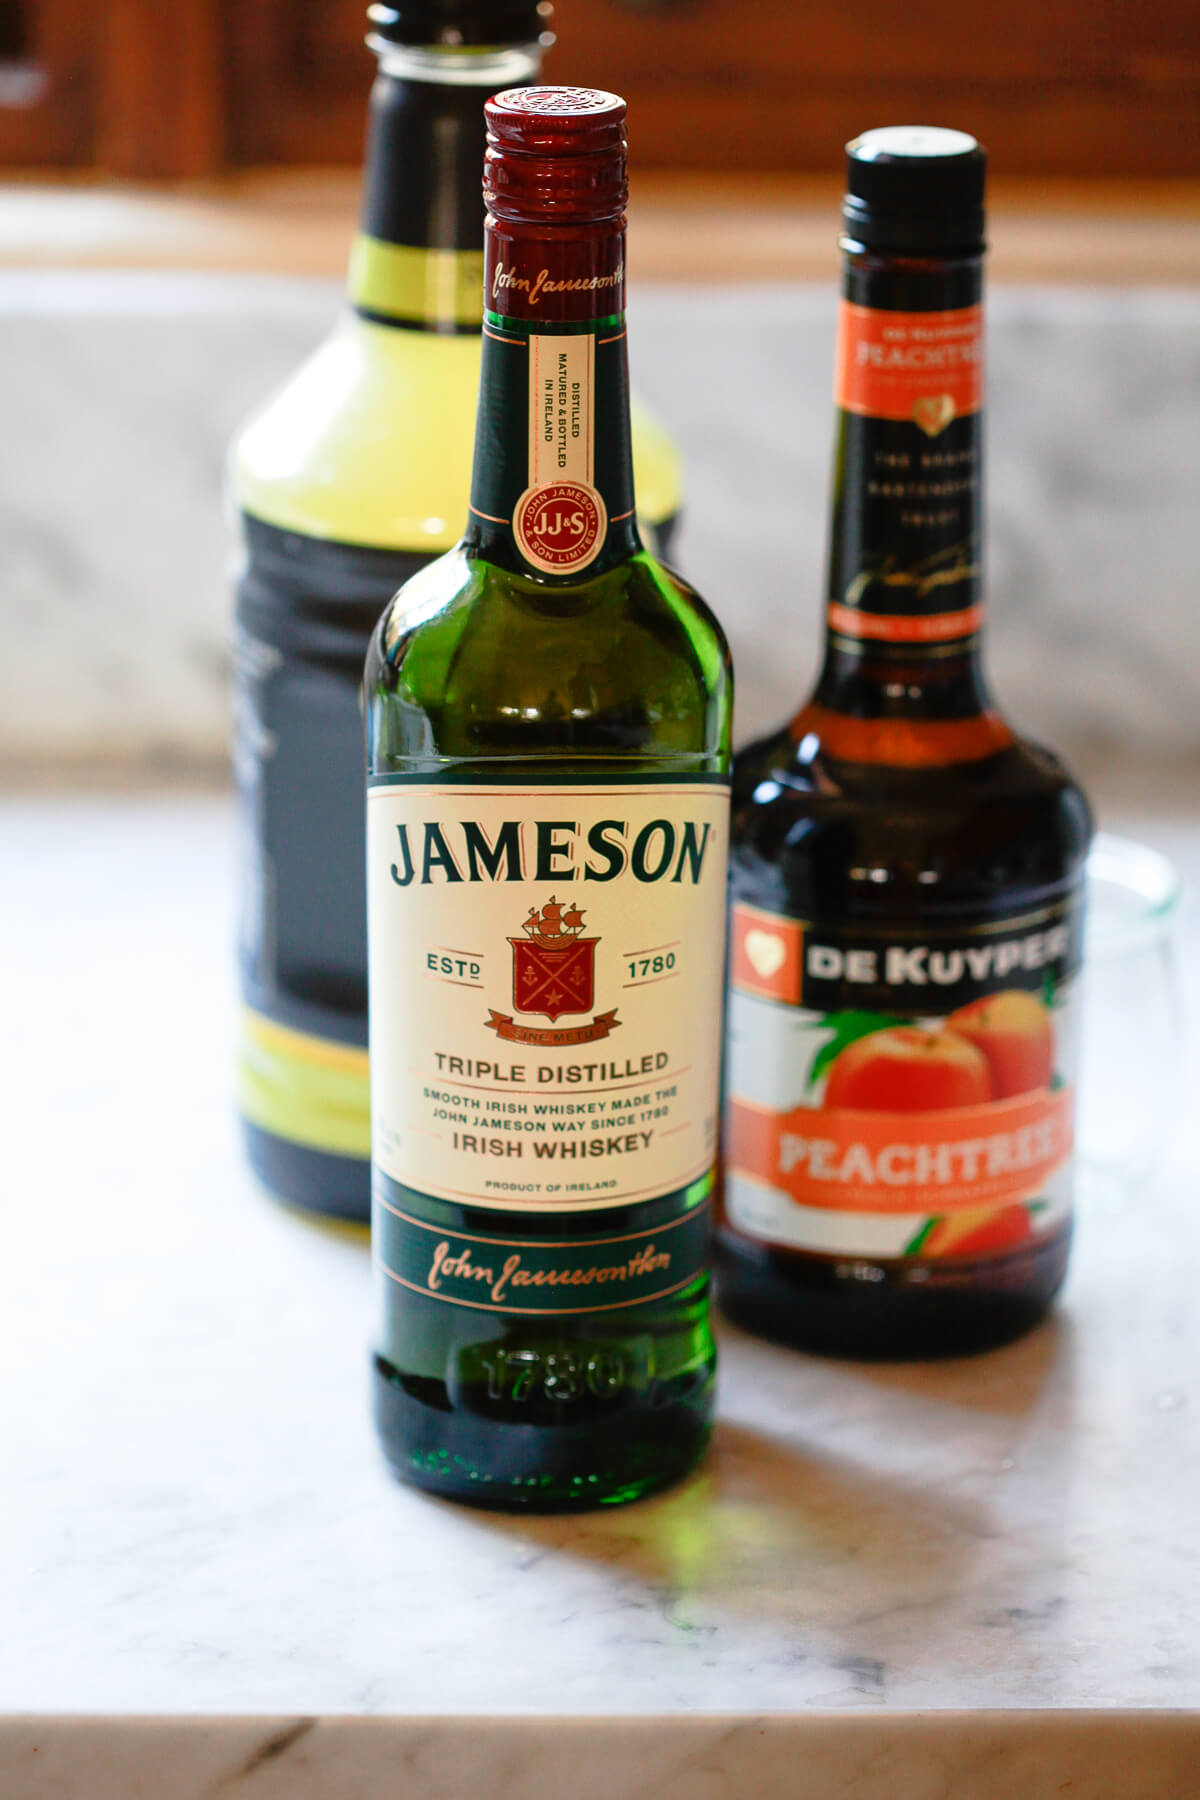 Three alcohol bottles sit on a marble countertop: Jameson Irish Whiskey in the foreground and peach schnapps and sweet and sour in the background.